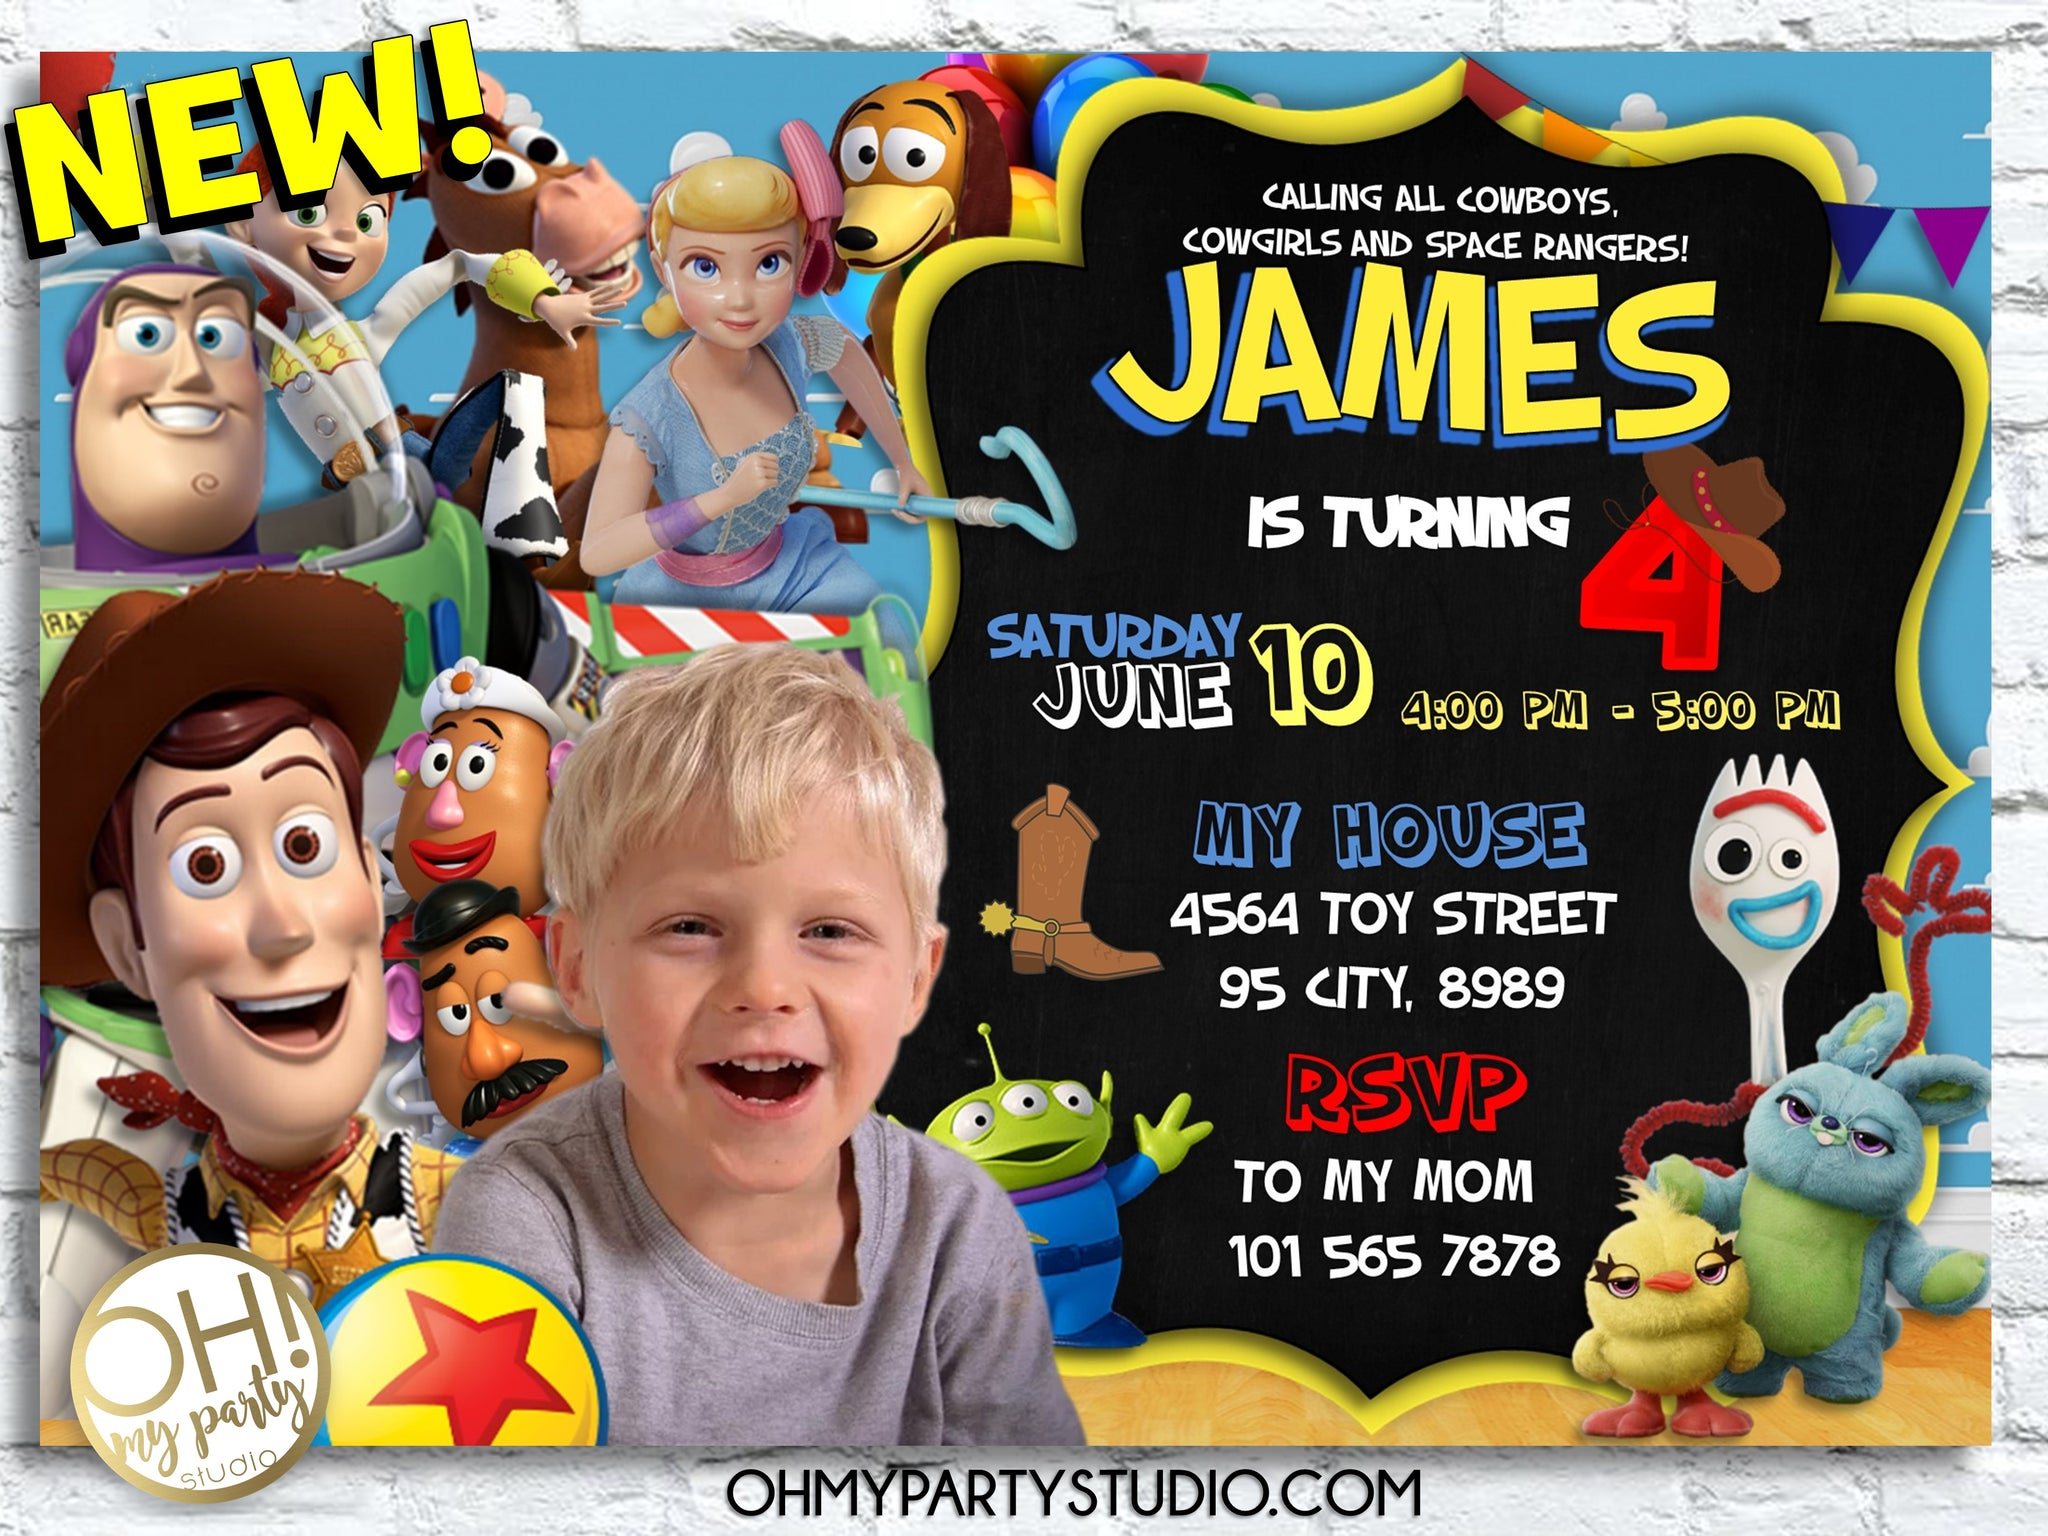 TOY STORY 4 BIRTHDAY INVITATION, TOY STORY BIRTHDAY INVITATION, TOY STORY PARTY, TOY STORY BIRTHDAY, TOY STORY BIRTHDAY PARTY,TOY STORY 4 PARTY IDEAS, TOY STORY 4 BIRTHDAY PARTY, TOY STORY 4 INVITE, TOY STORY 4 INVITATIONS, TOY STORY 4 BIRTHDAY PARTY INVITATIONS, TOY STORY 4 INVITATION WITH PICTURE, TOY STORY 4 INVITATION WITH PHOTO, TOY STORY 4 PARTY IDEAS, TOY STORY 4 INVITE, TOY STORY 4 DIGITAL INVITATION